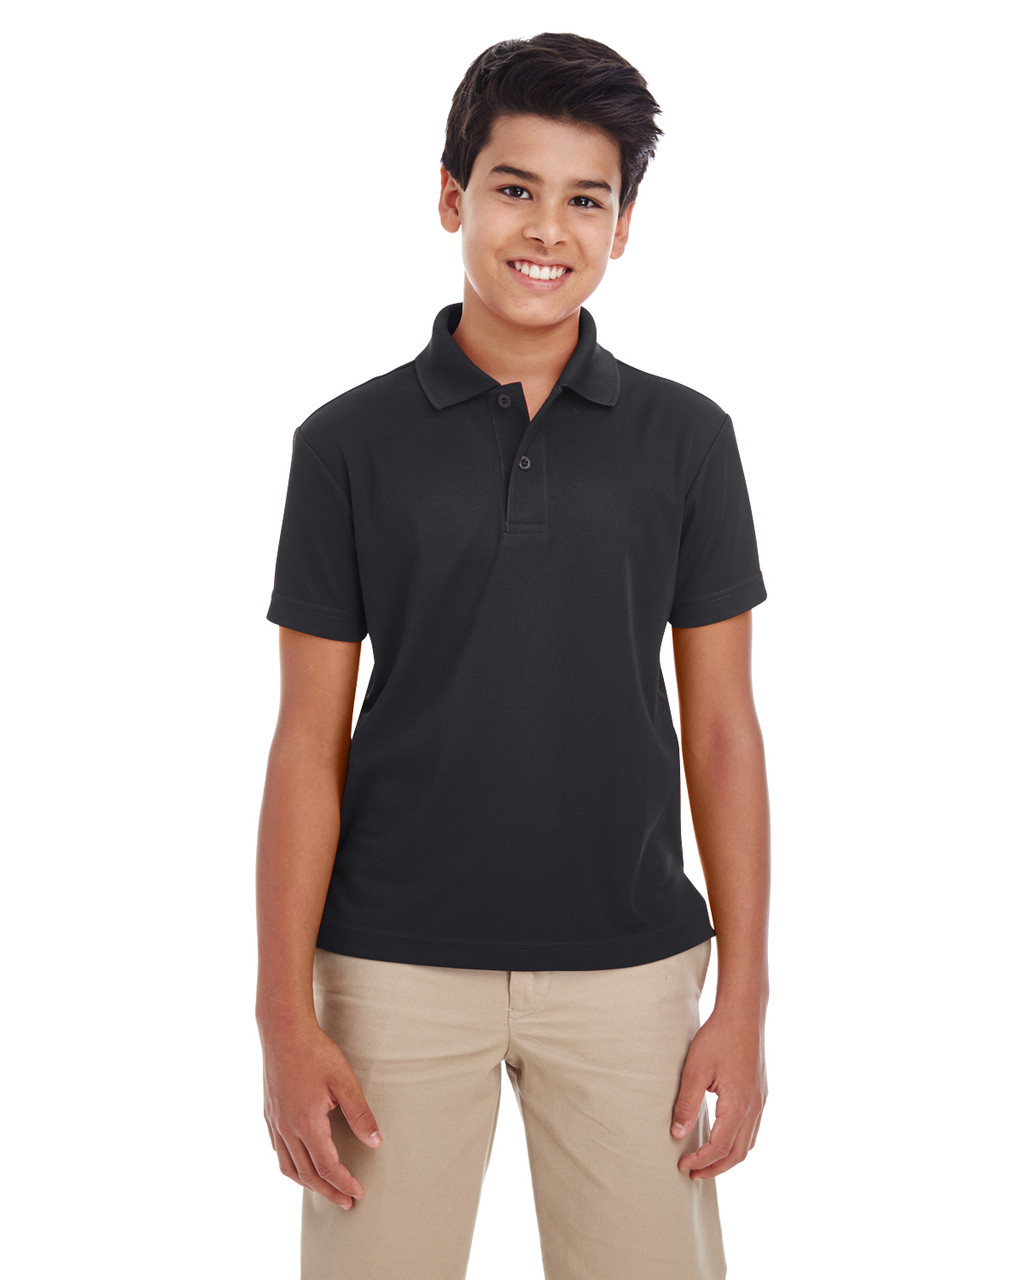 Classic Navy - 88181Y Ash City - Core 365 Youth Origin Performance Pique Polo Shirt | Blankclothing.ca